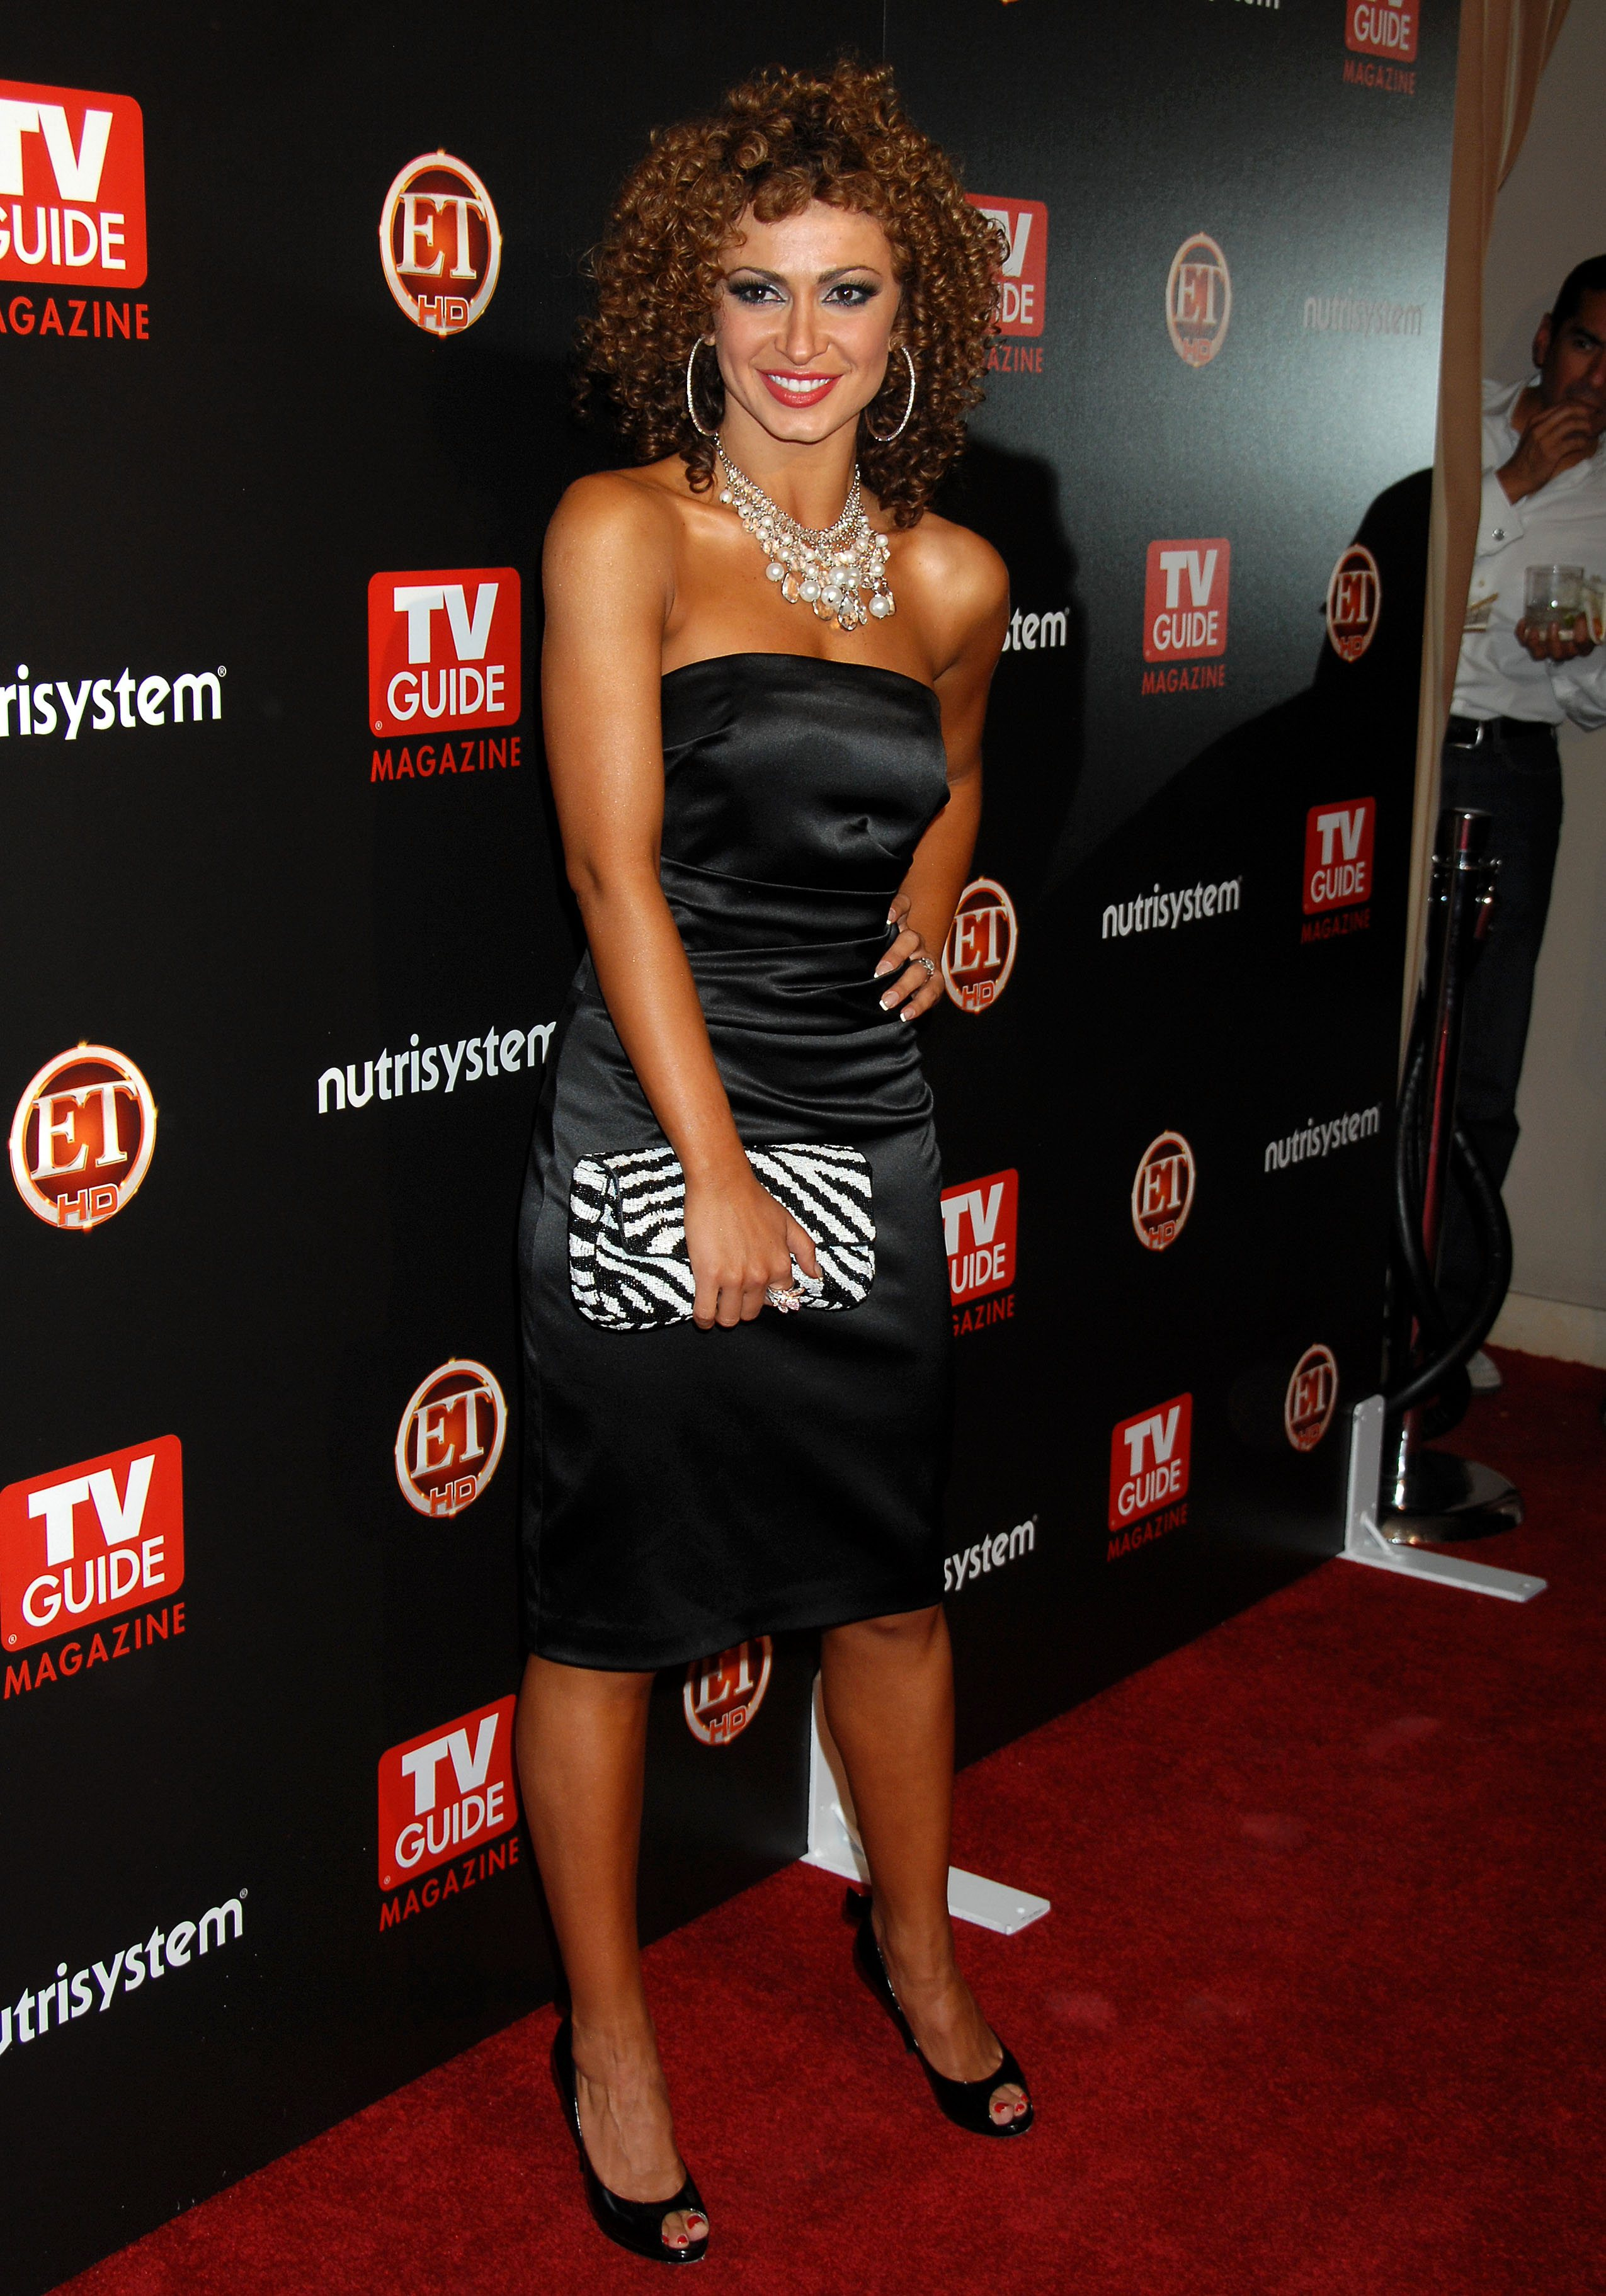 13513_Karina_Smirnoff_2009-03-24_-_TV_Guide7s_sexiest_stars_party_in_Hollywood_633_122_52lo.jpg